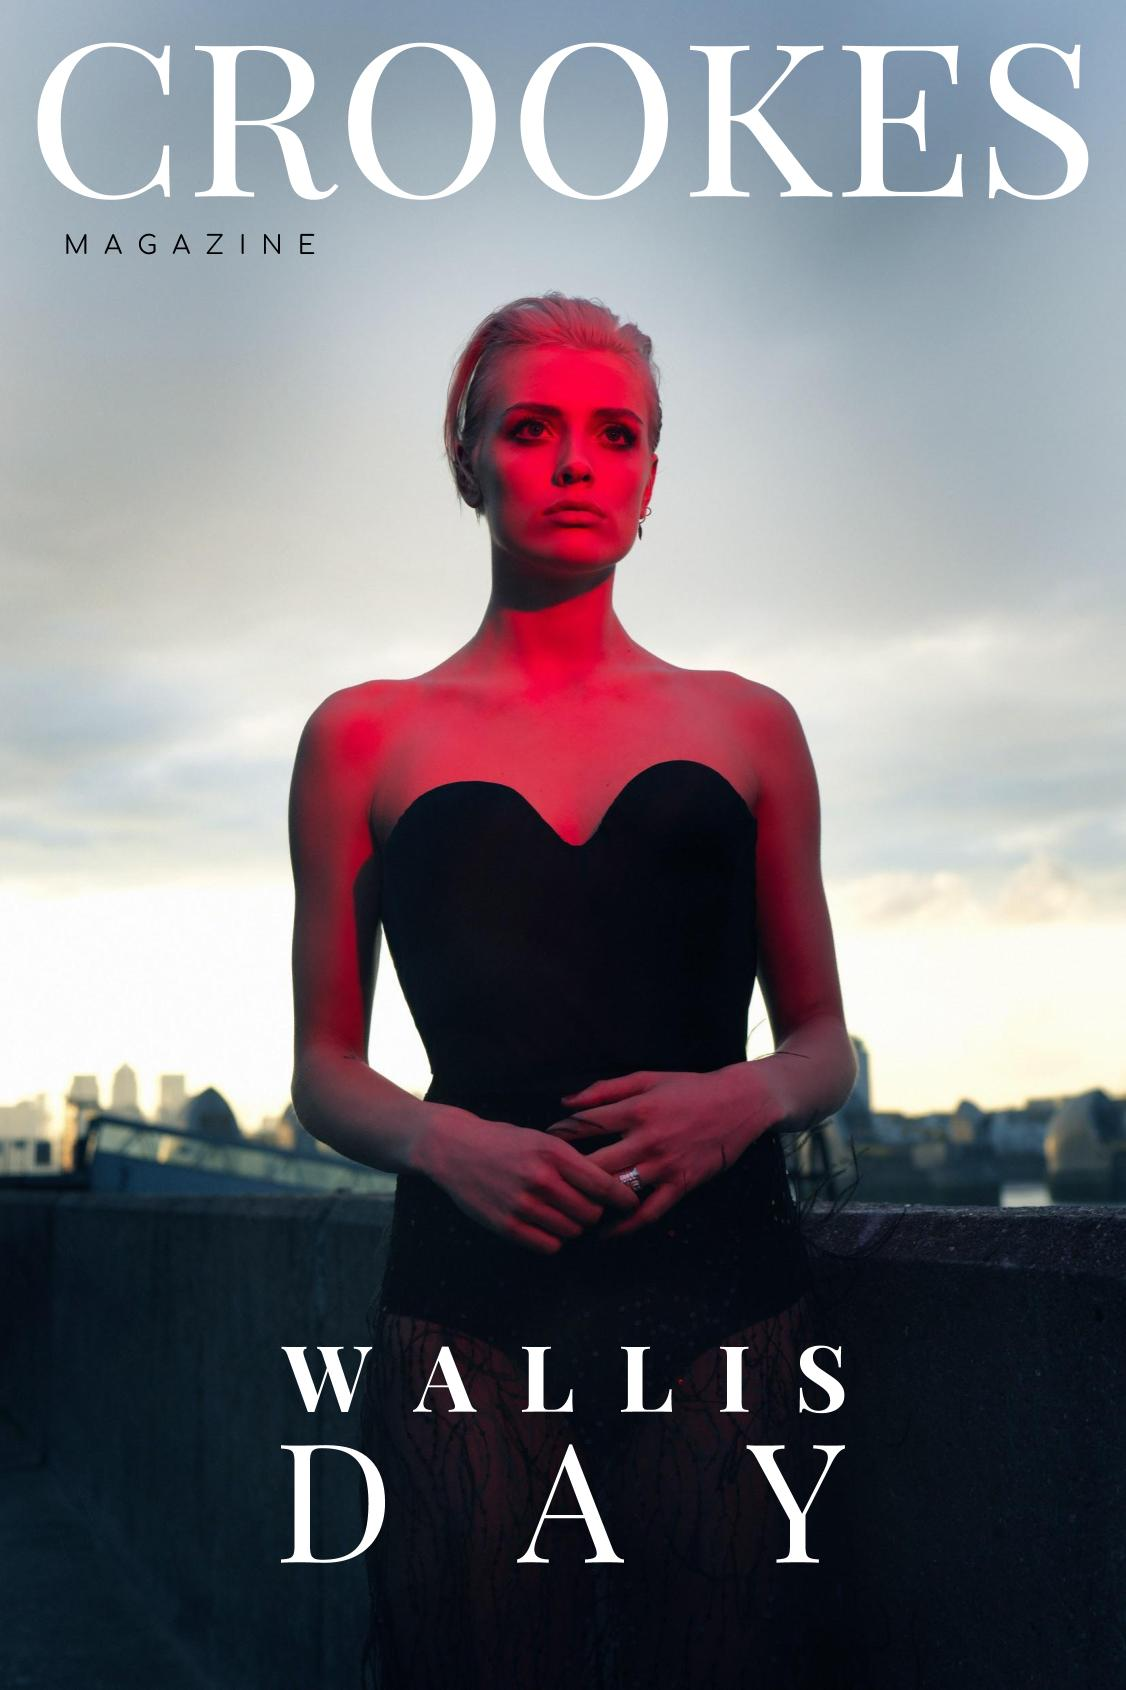 Wallis Day Photoshoot 2018